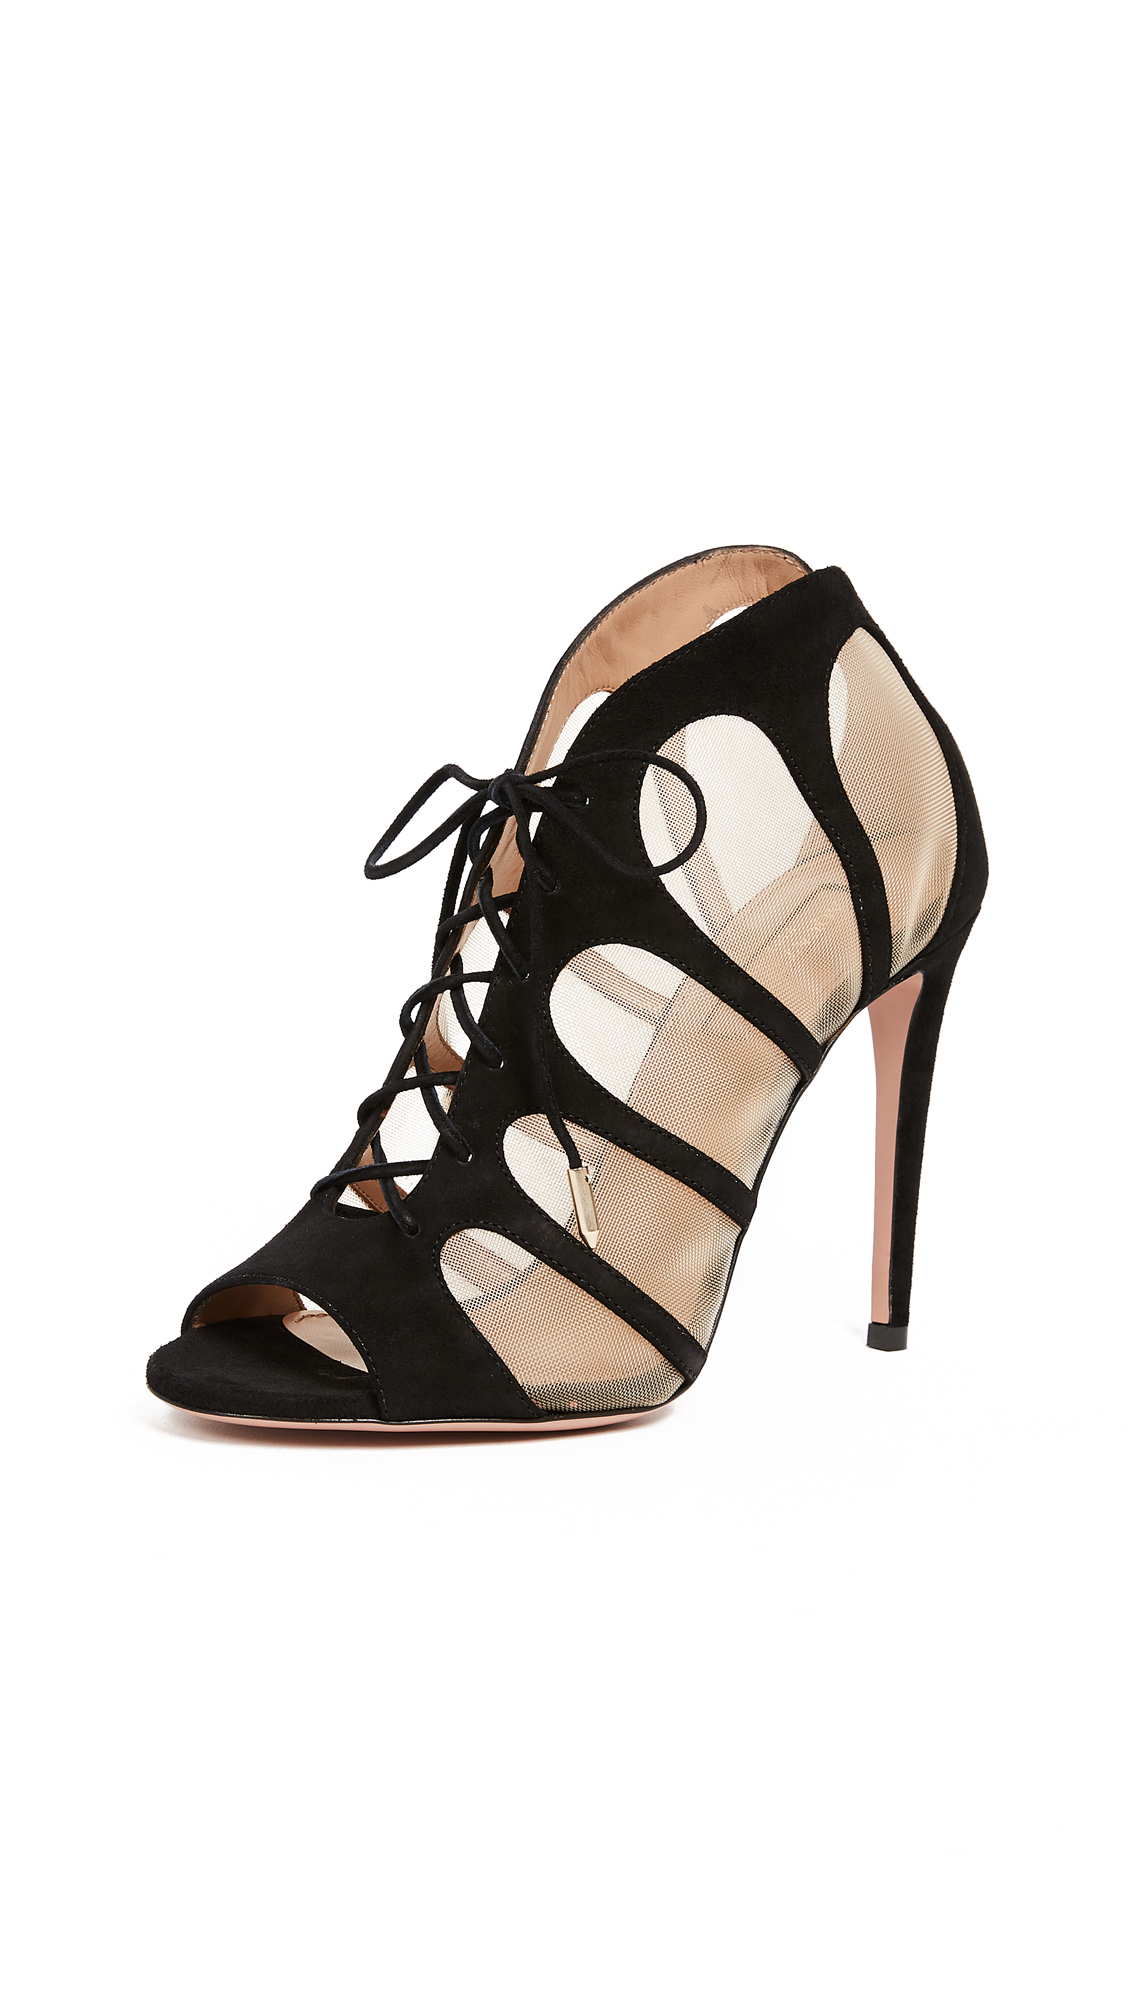 Aquazzura Elia 105 Sandals - Black